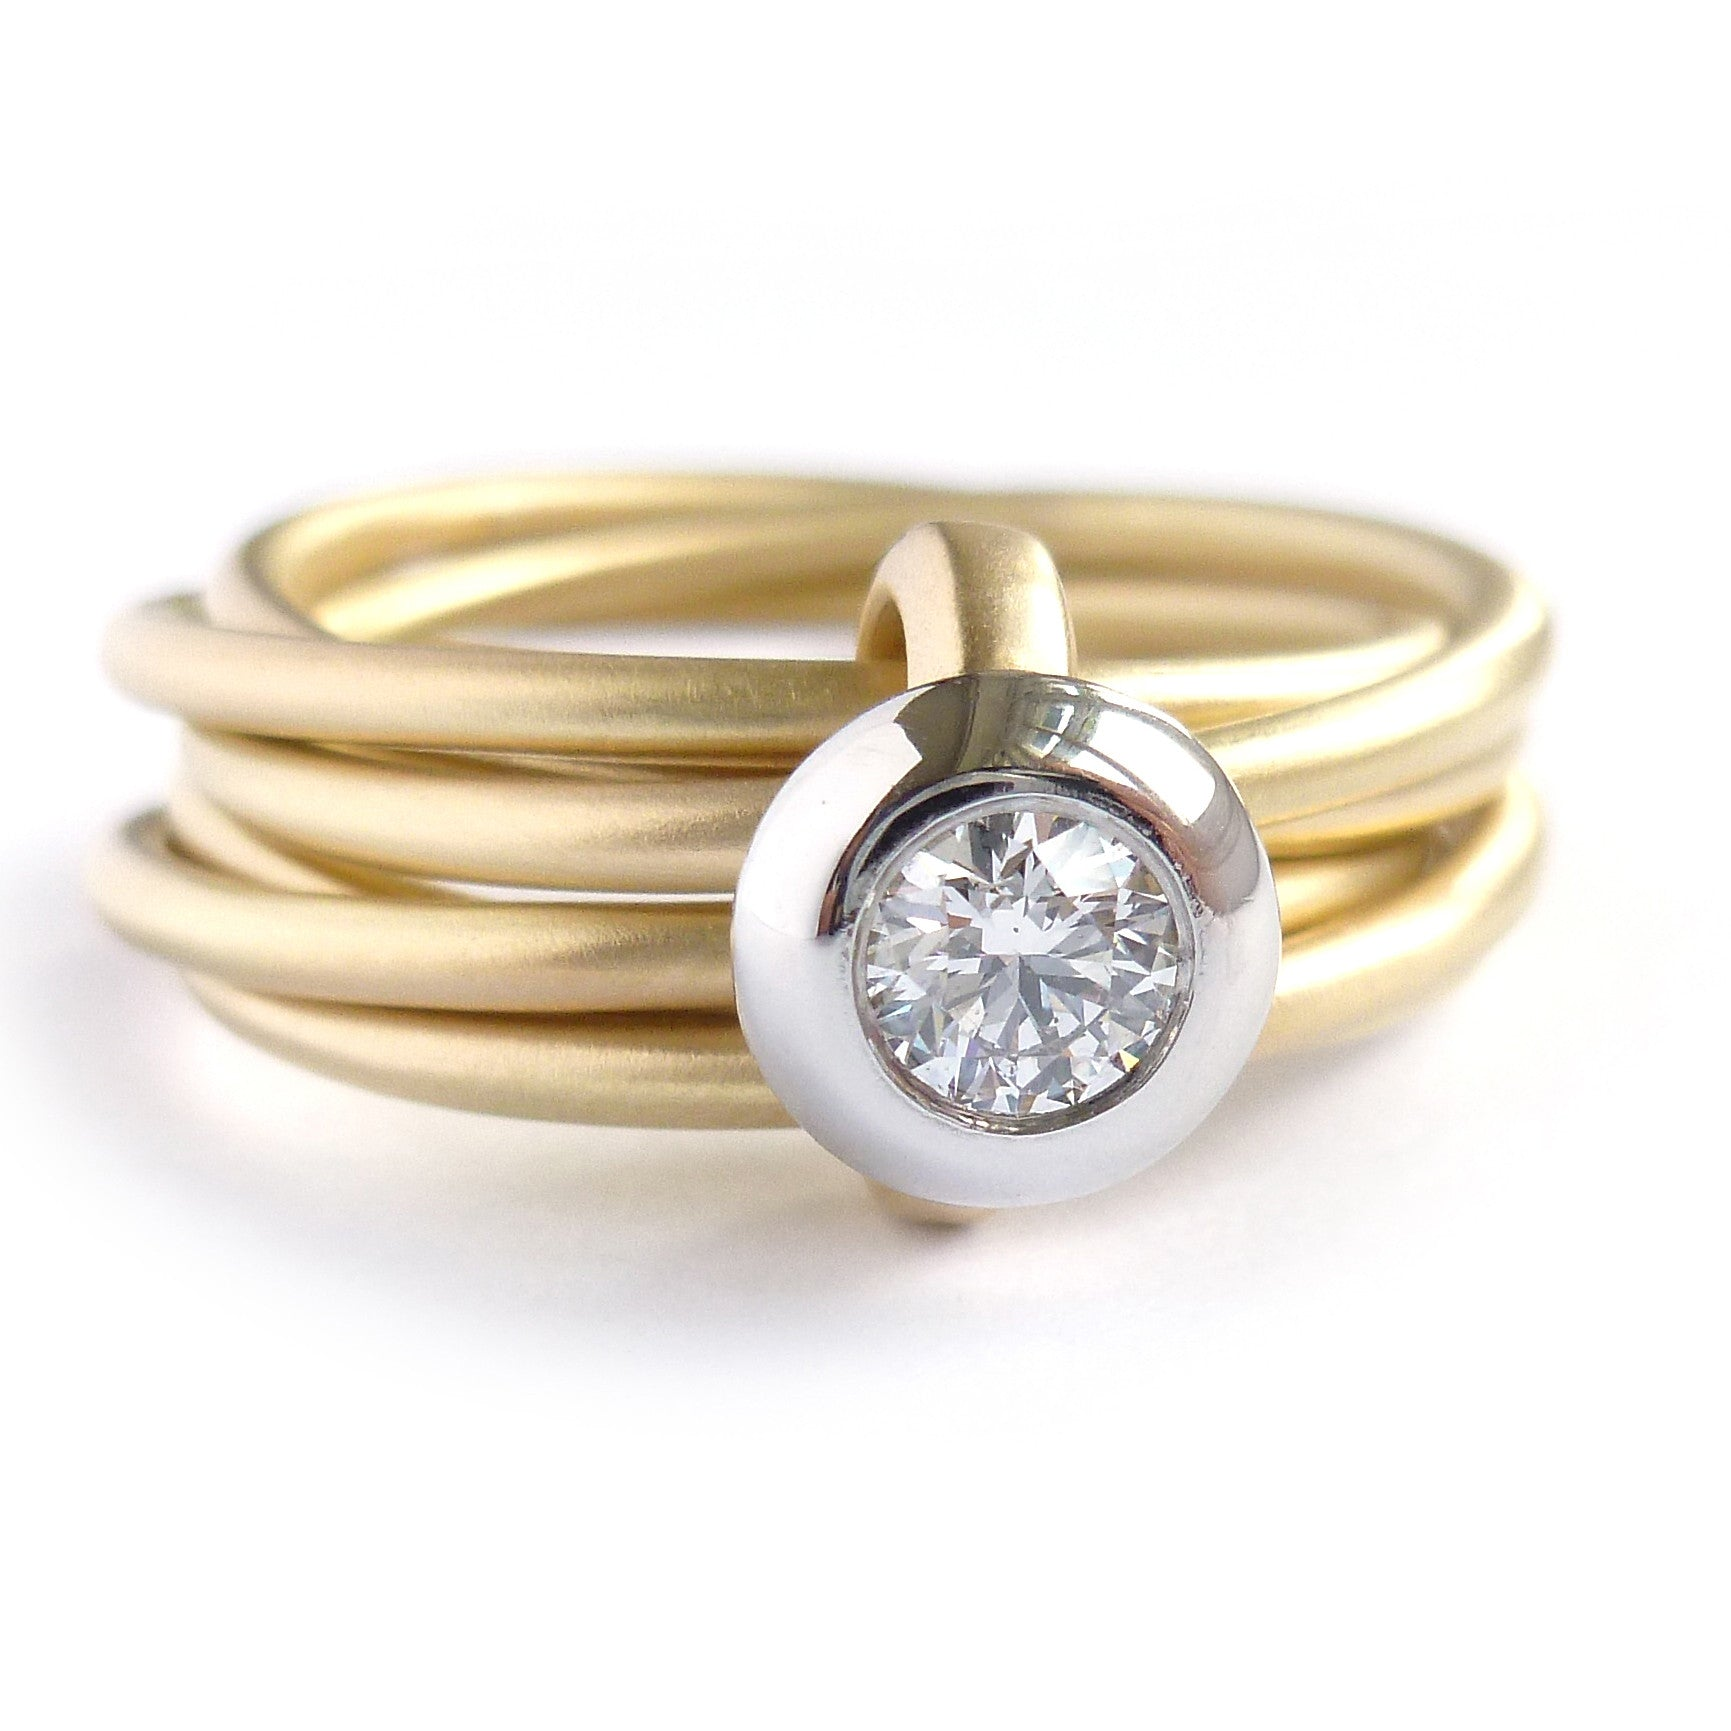 Contemporary, bespoke and modern yellow gold multi band engagement wedding ring, 0.25pt round white diamond, handmade by designer maker sue lane jewellery. Multi band ring or interlocking ring.